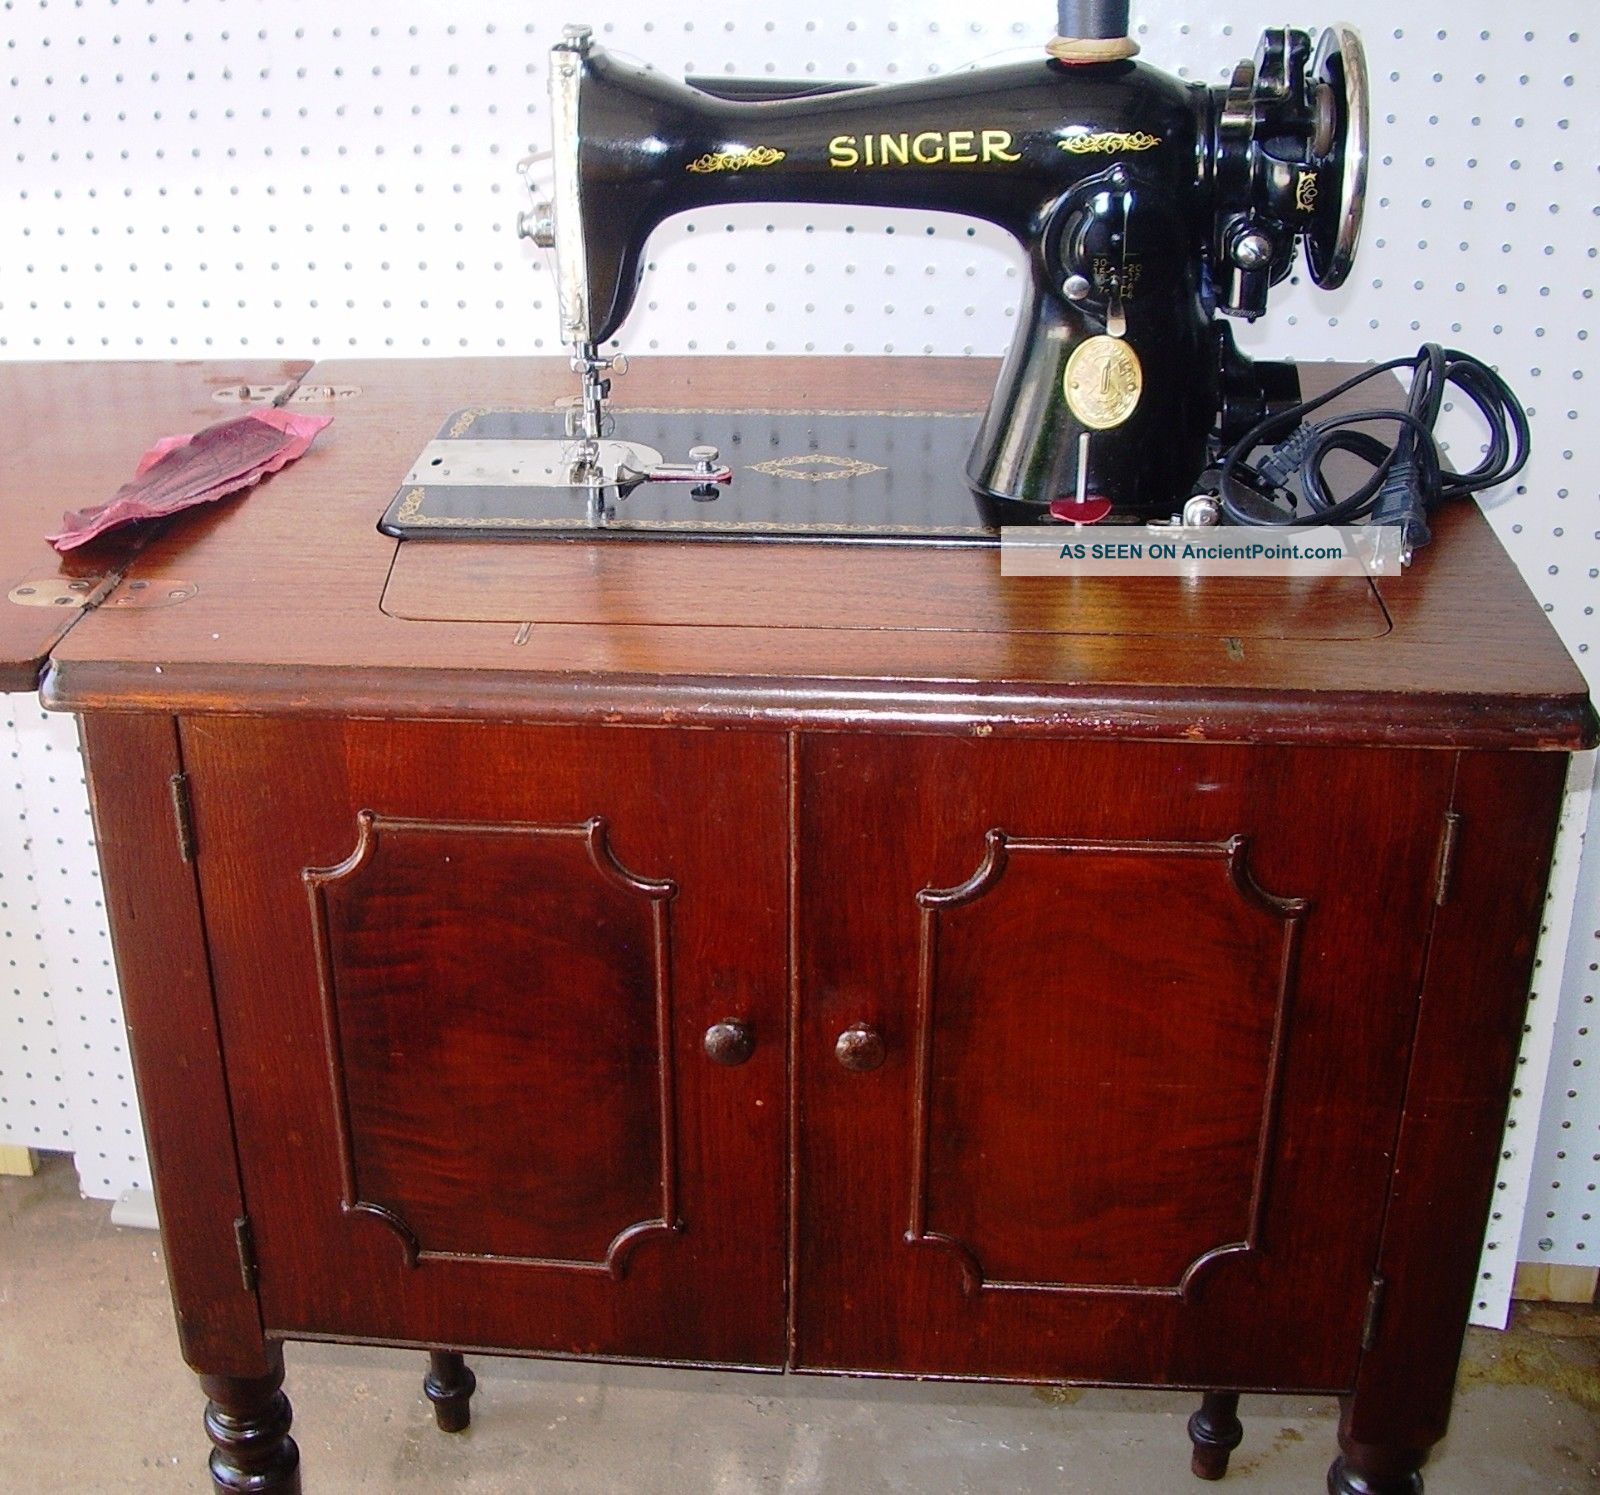 Splendent Singer 15 91 Direct Drive Sewing Machine Egyptian Scroll 47walnut Cabinet 1935 1 Lgw Singer 15 91 Adjusters Manual Singer 15 91 Zigzag Attachment houzz 01 Singer 15 91